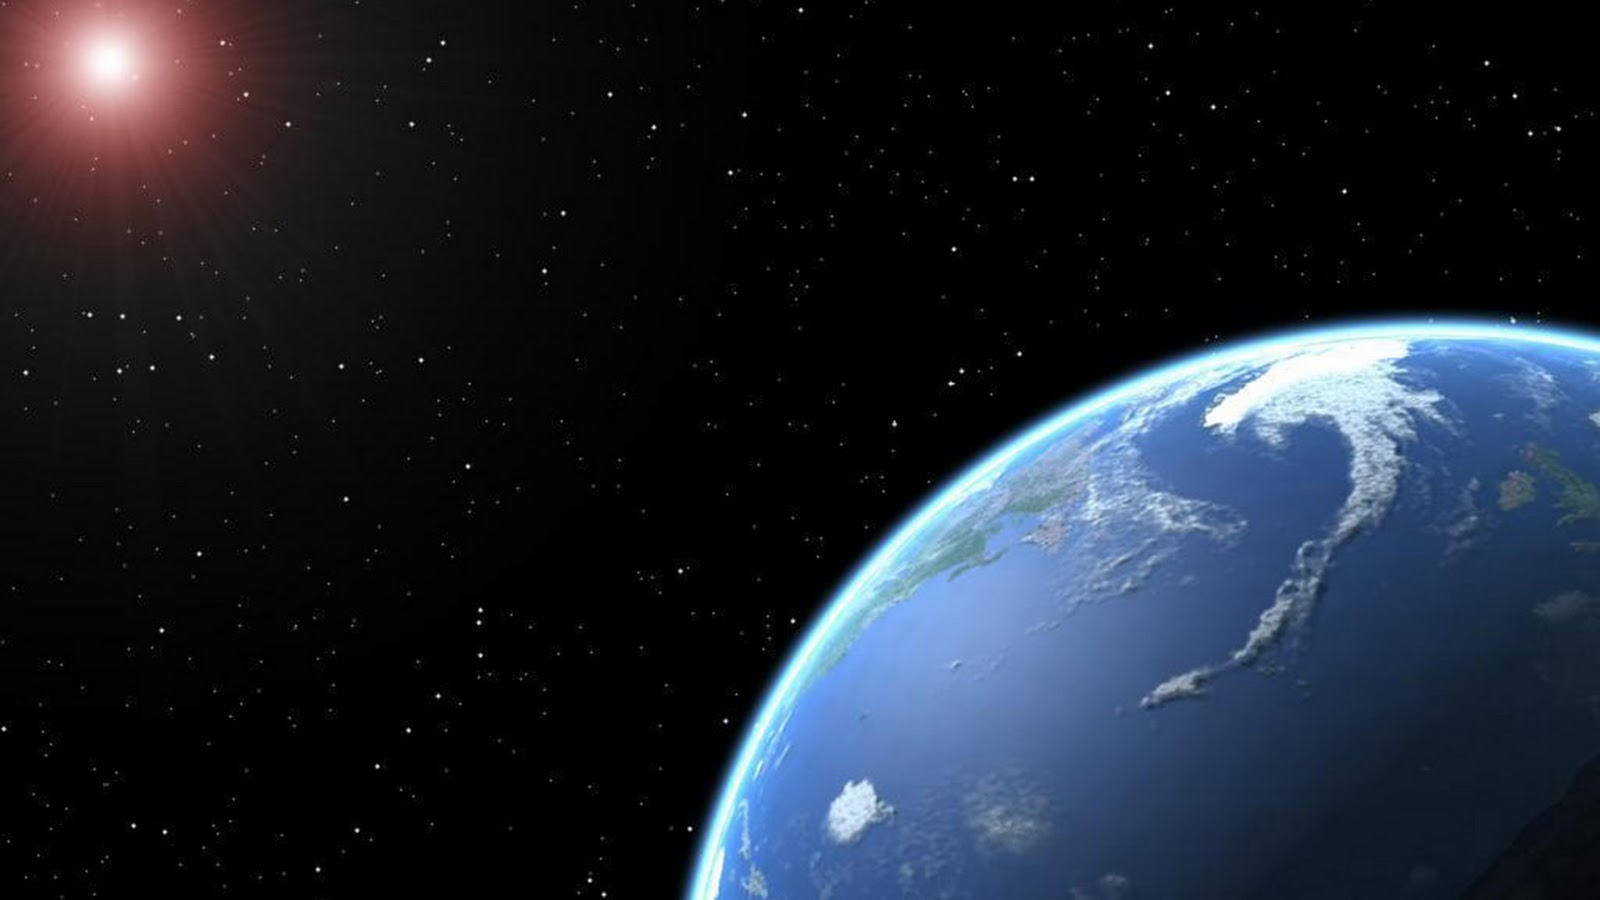 ... space-wallpapers-0o-hd-space-wallpaper-blue-earth-from-outer-space.jpg